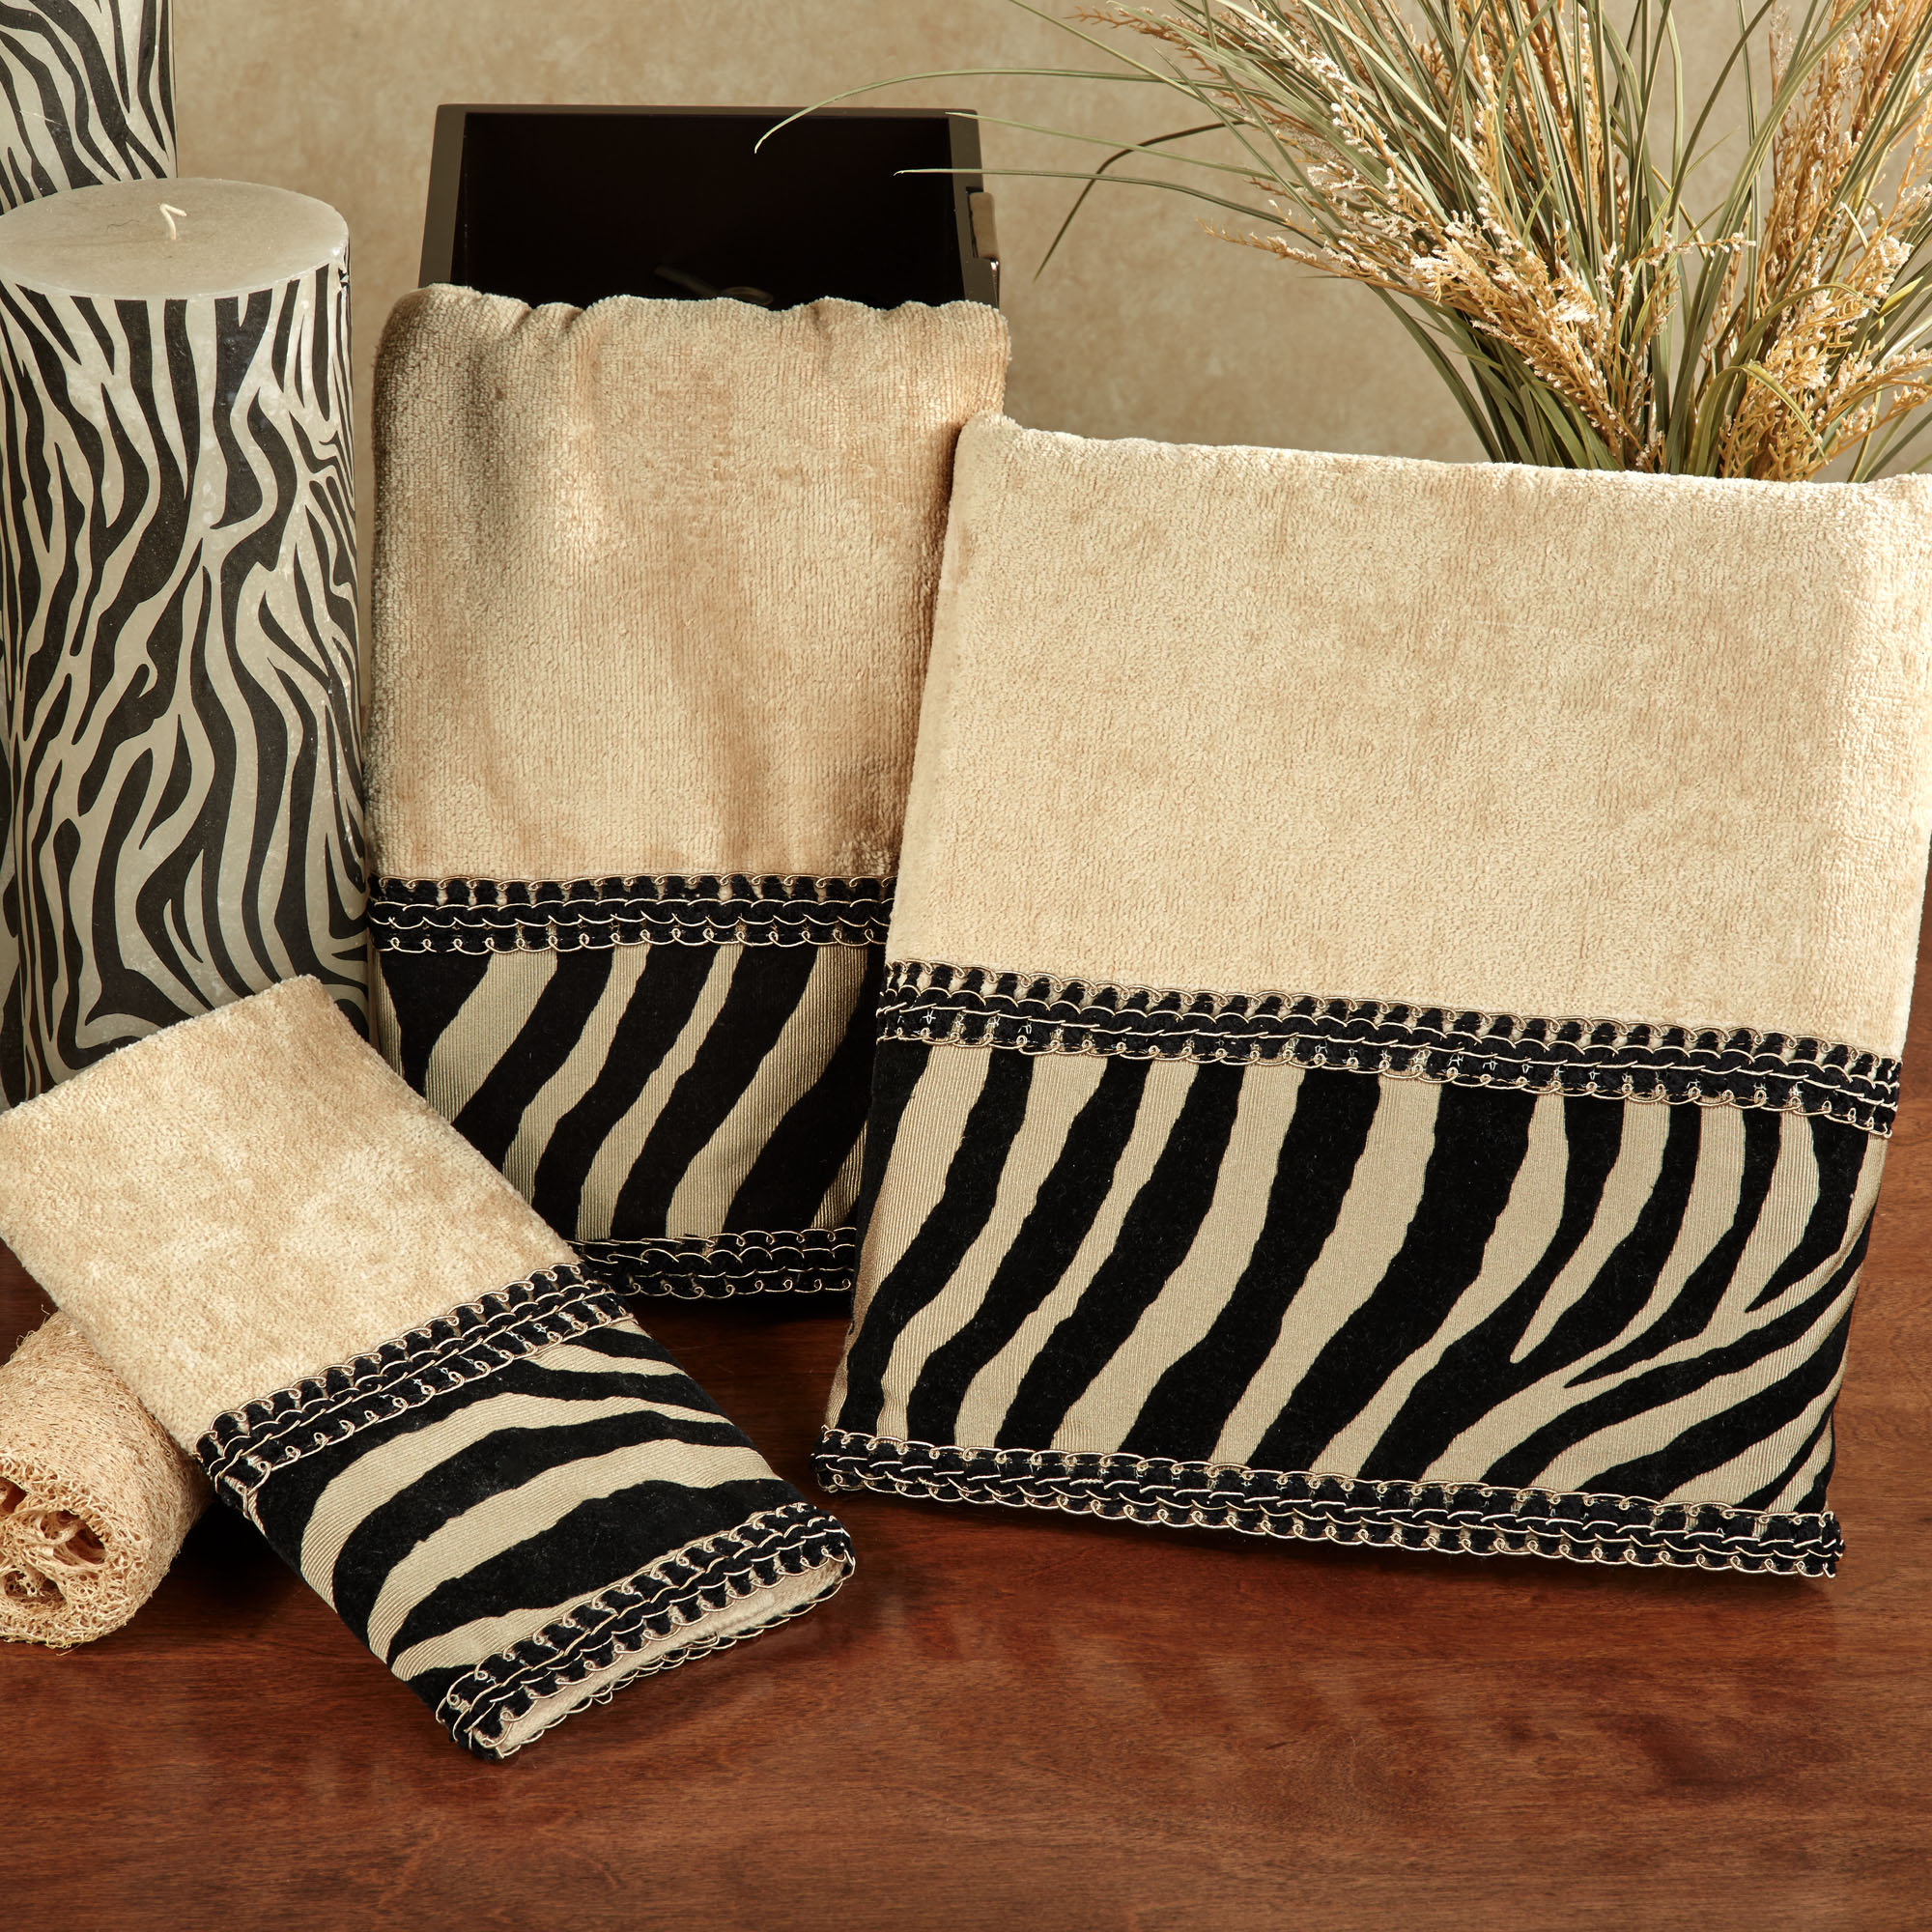 Best Zuma Zebra Decorative Towel Set This Month